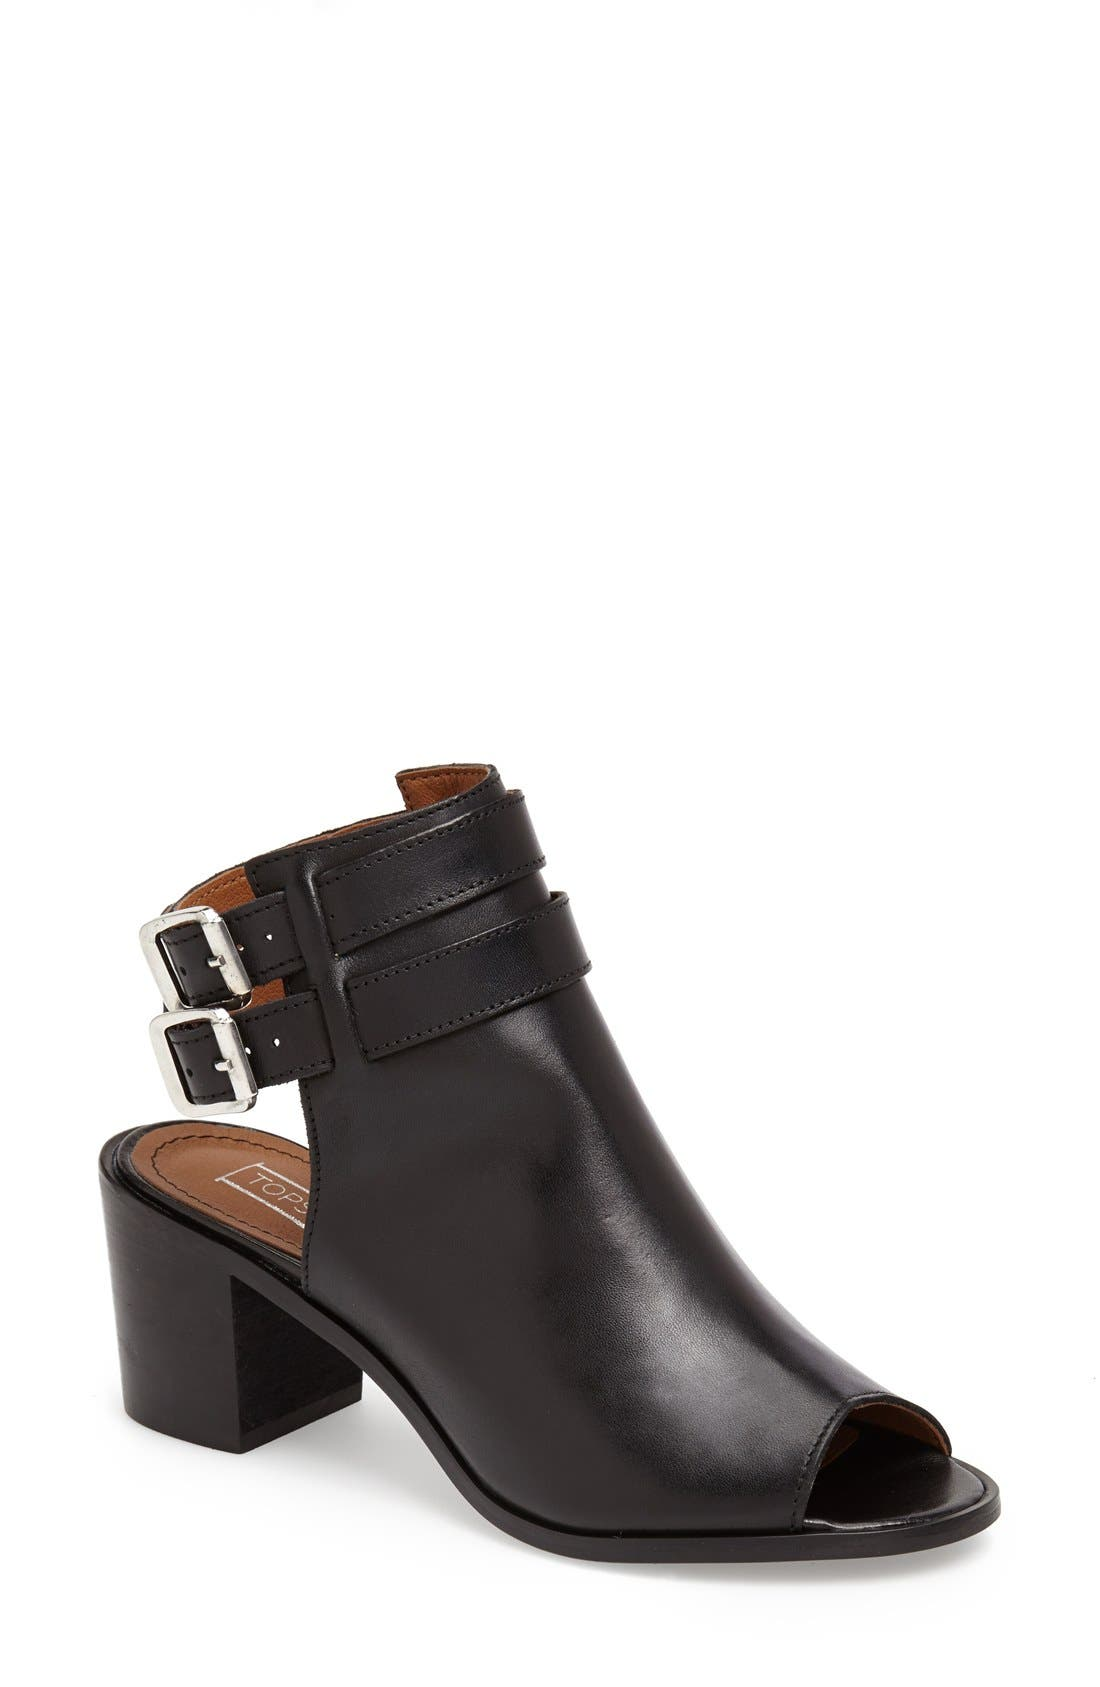 Alternate Image 1 Selected - Topshop 'Jolie' Bootie Sandal